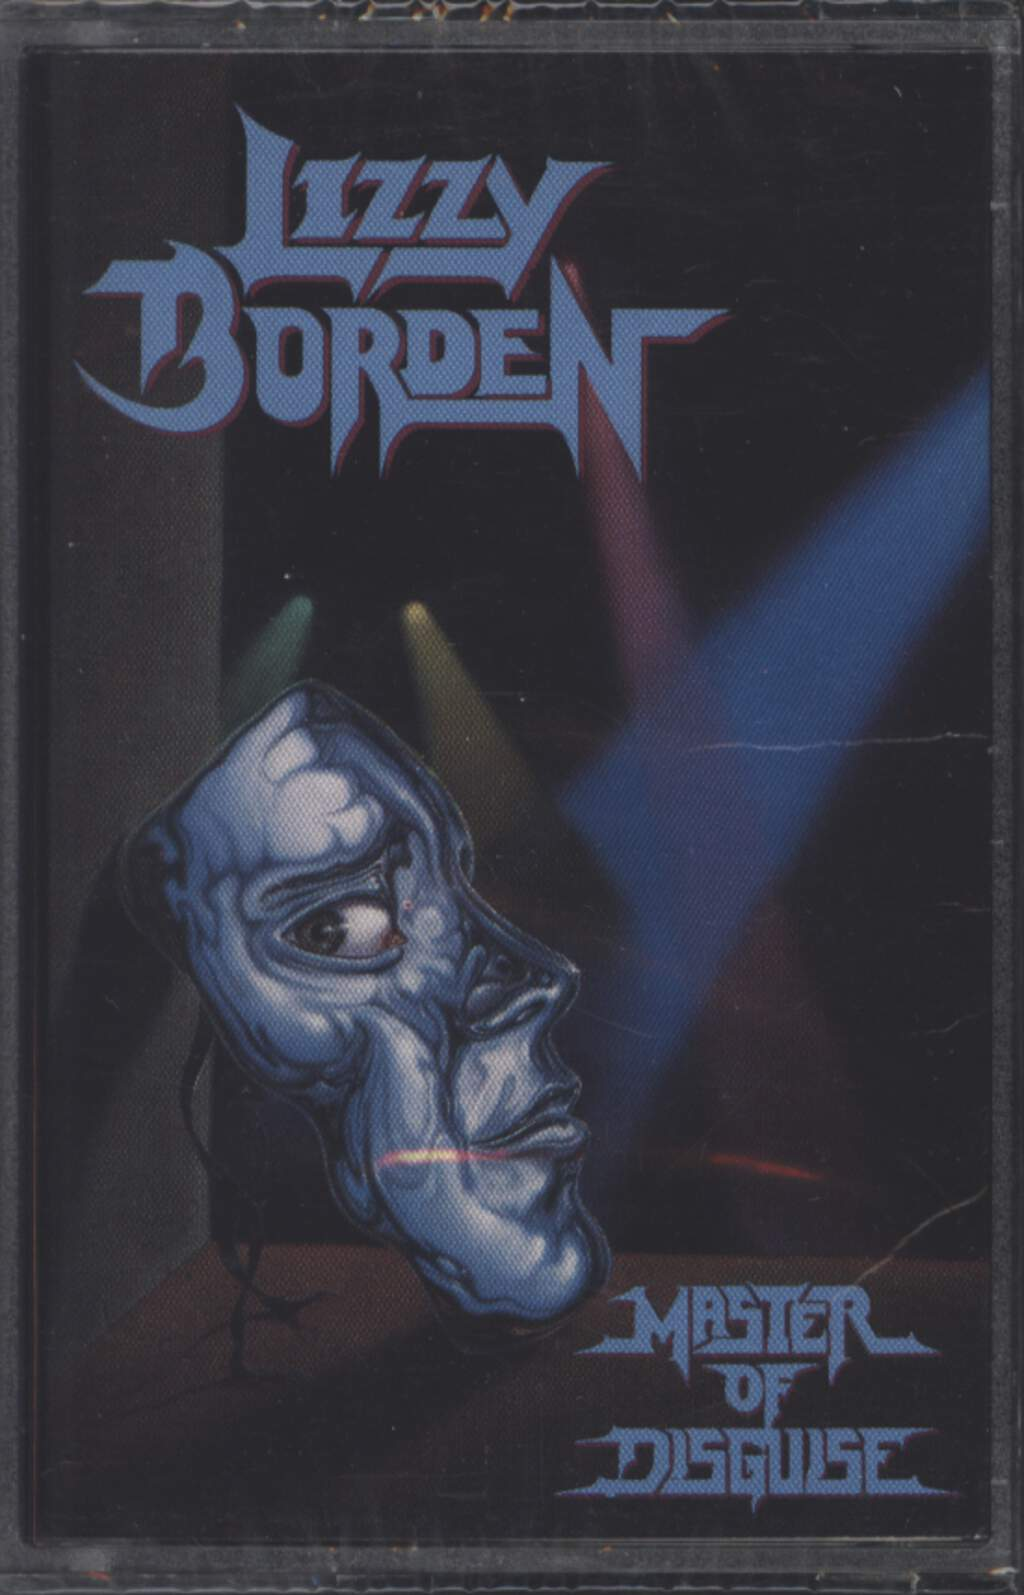 Lizzy Borden: Master Of Disguise, Tape